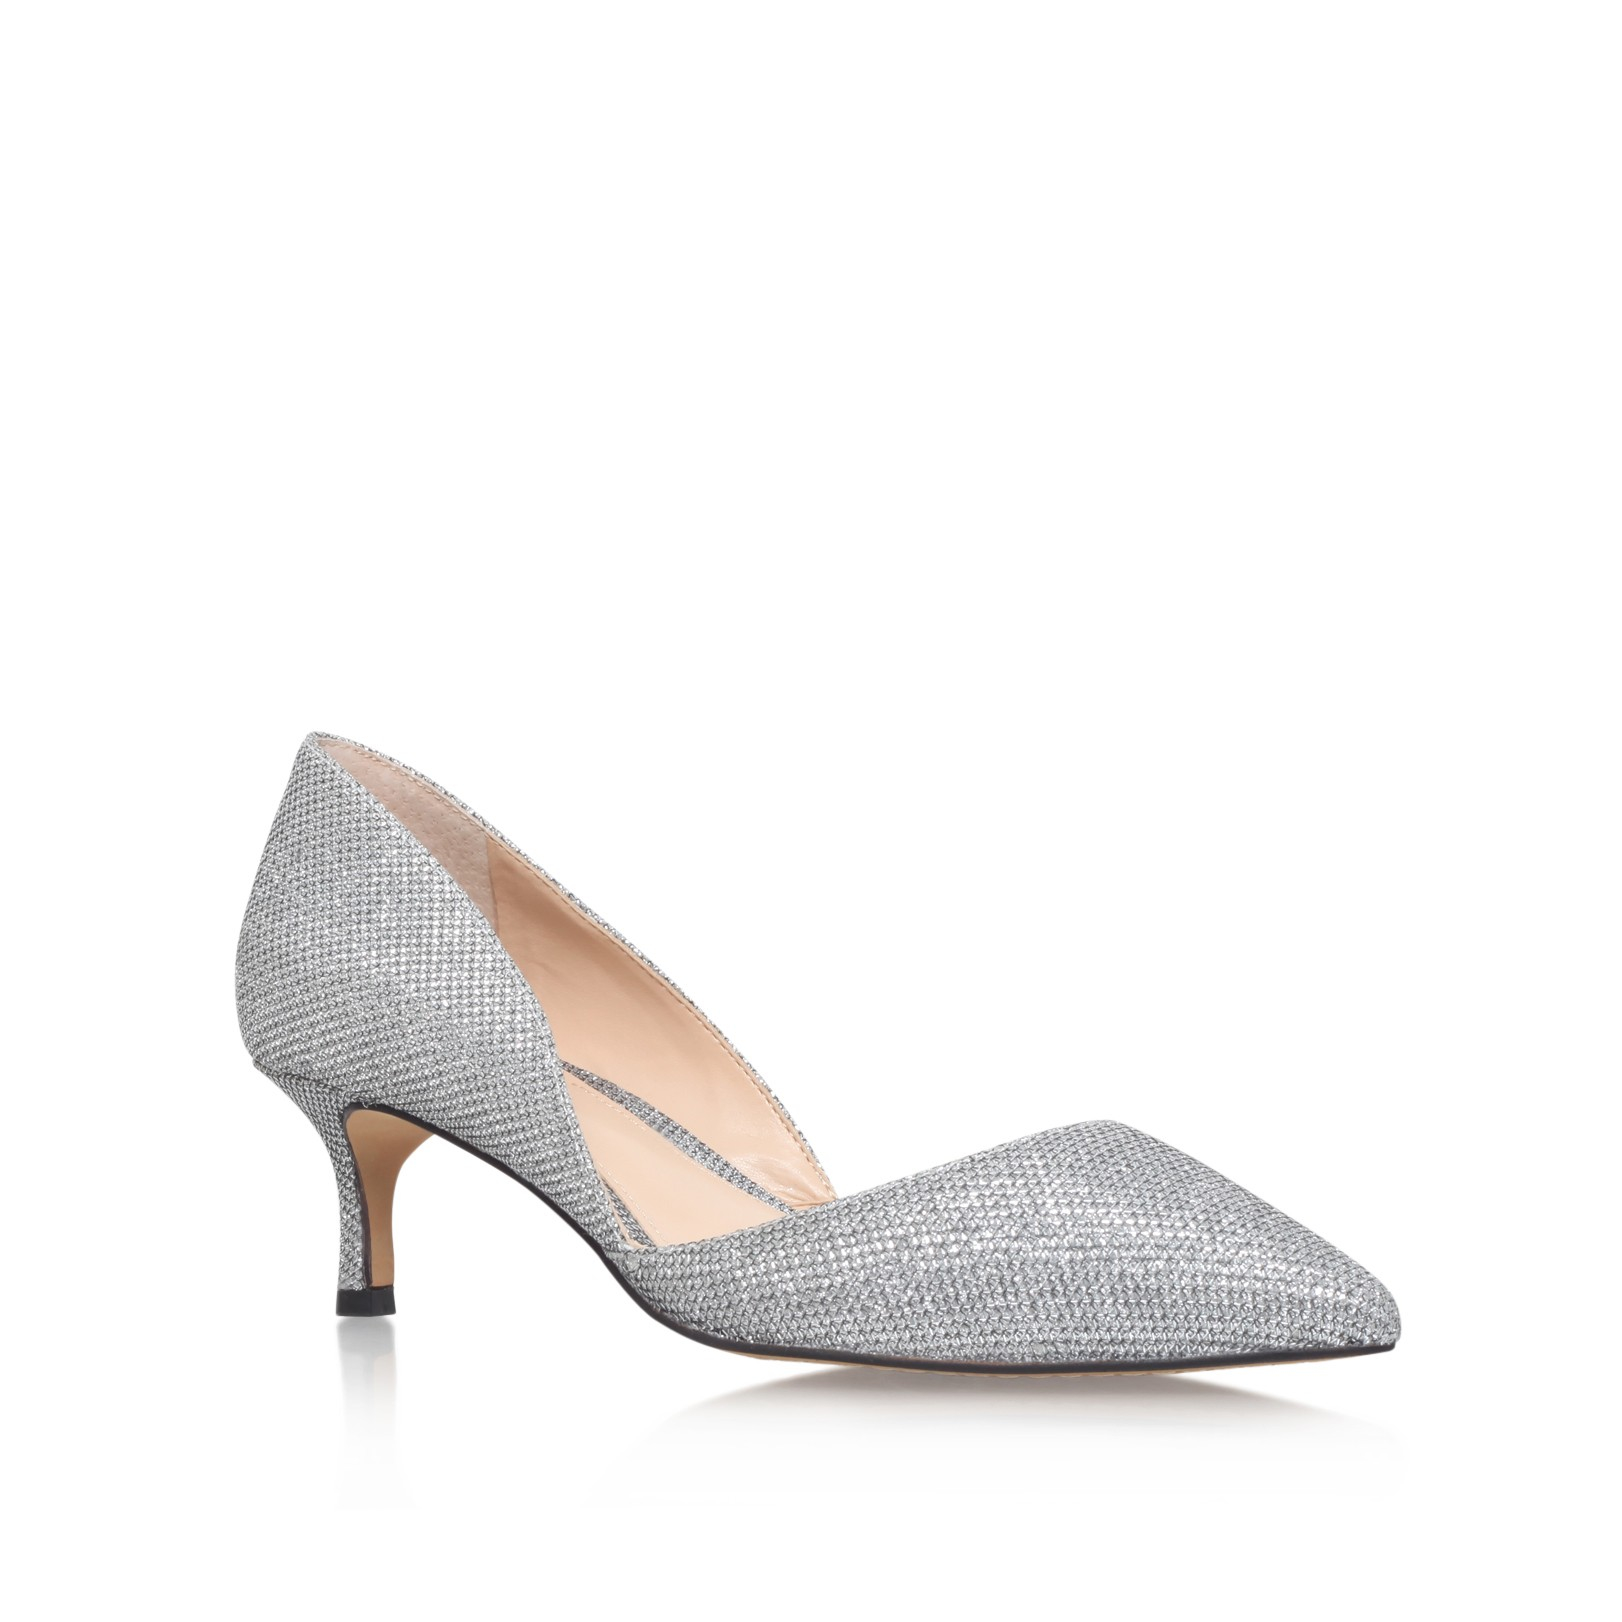 Lyst Vince Camuto Premell Low Heel Court Shoes In Metallic